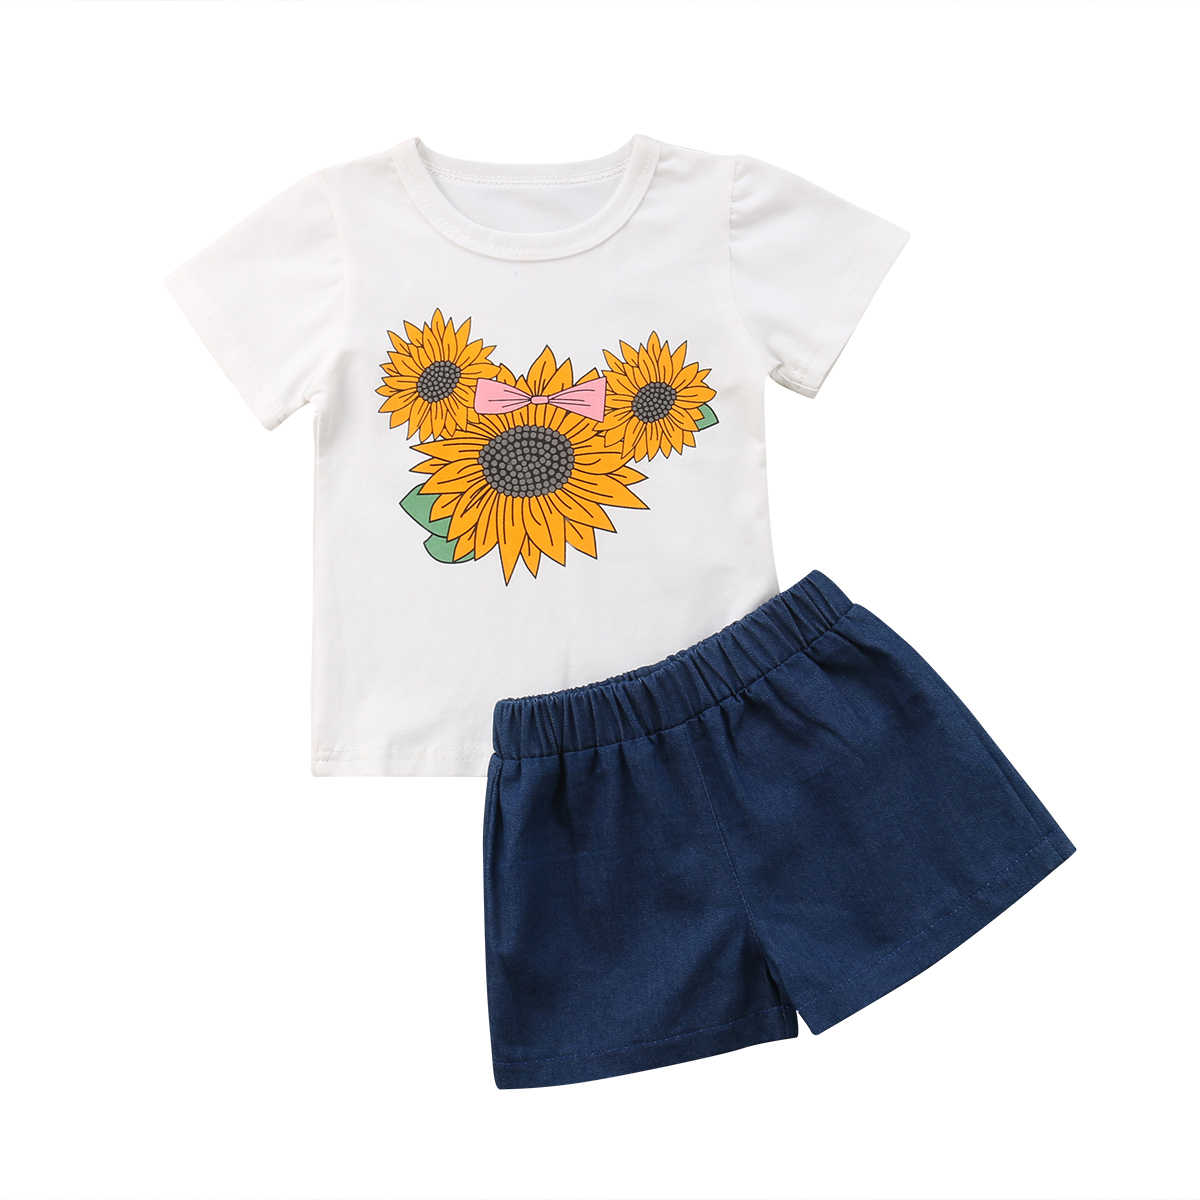 273b91a2a Detail Feedback Questions about Baby Girls Sunflower Clothing Set ...